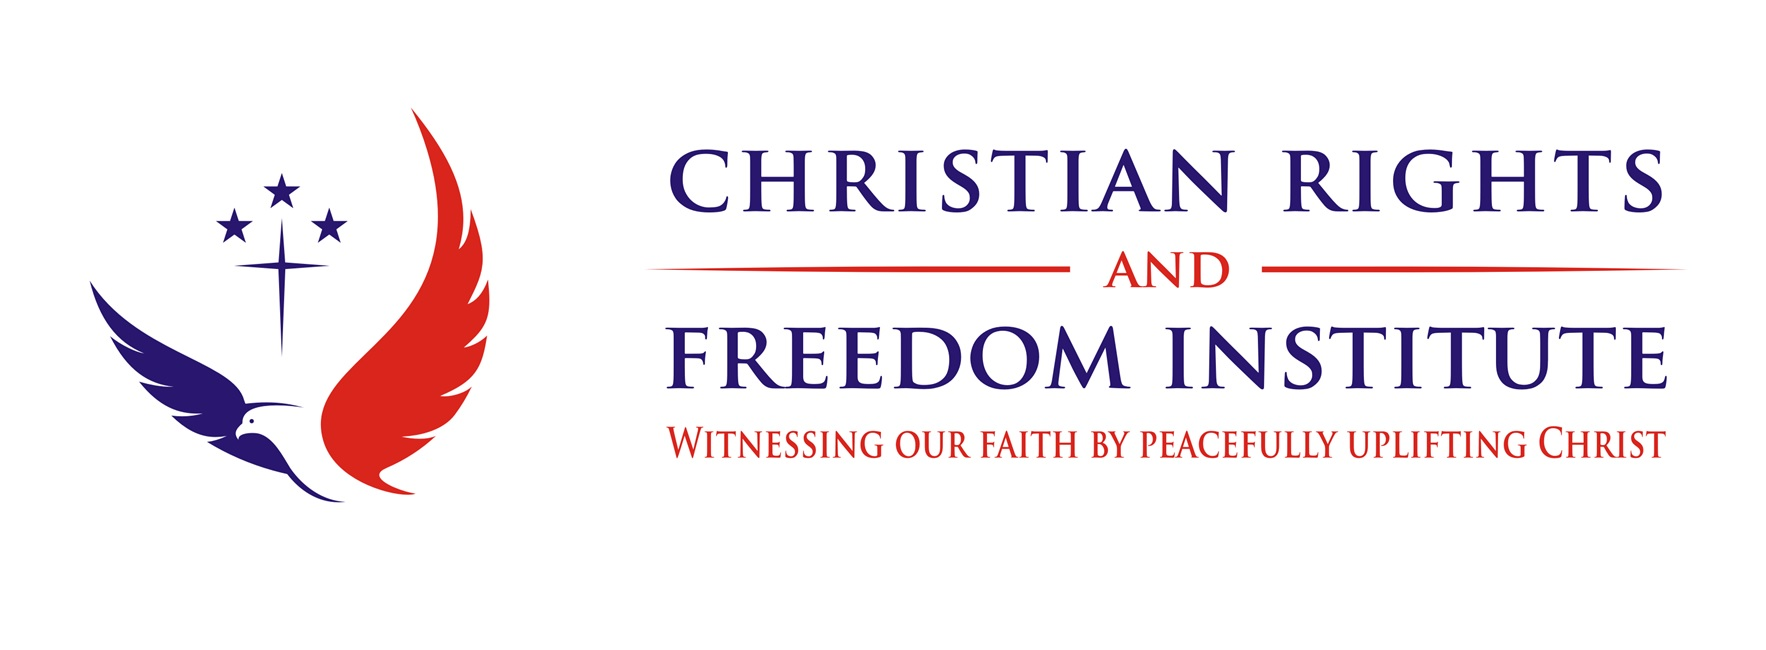 Christian Rights And Freedom Institute